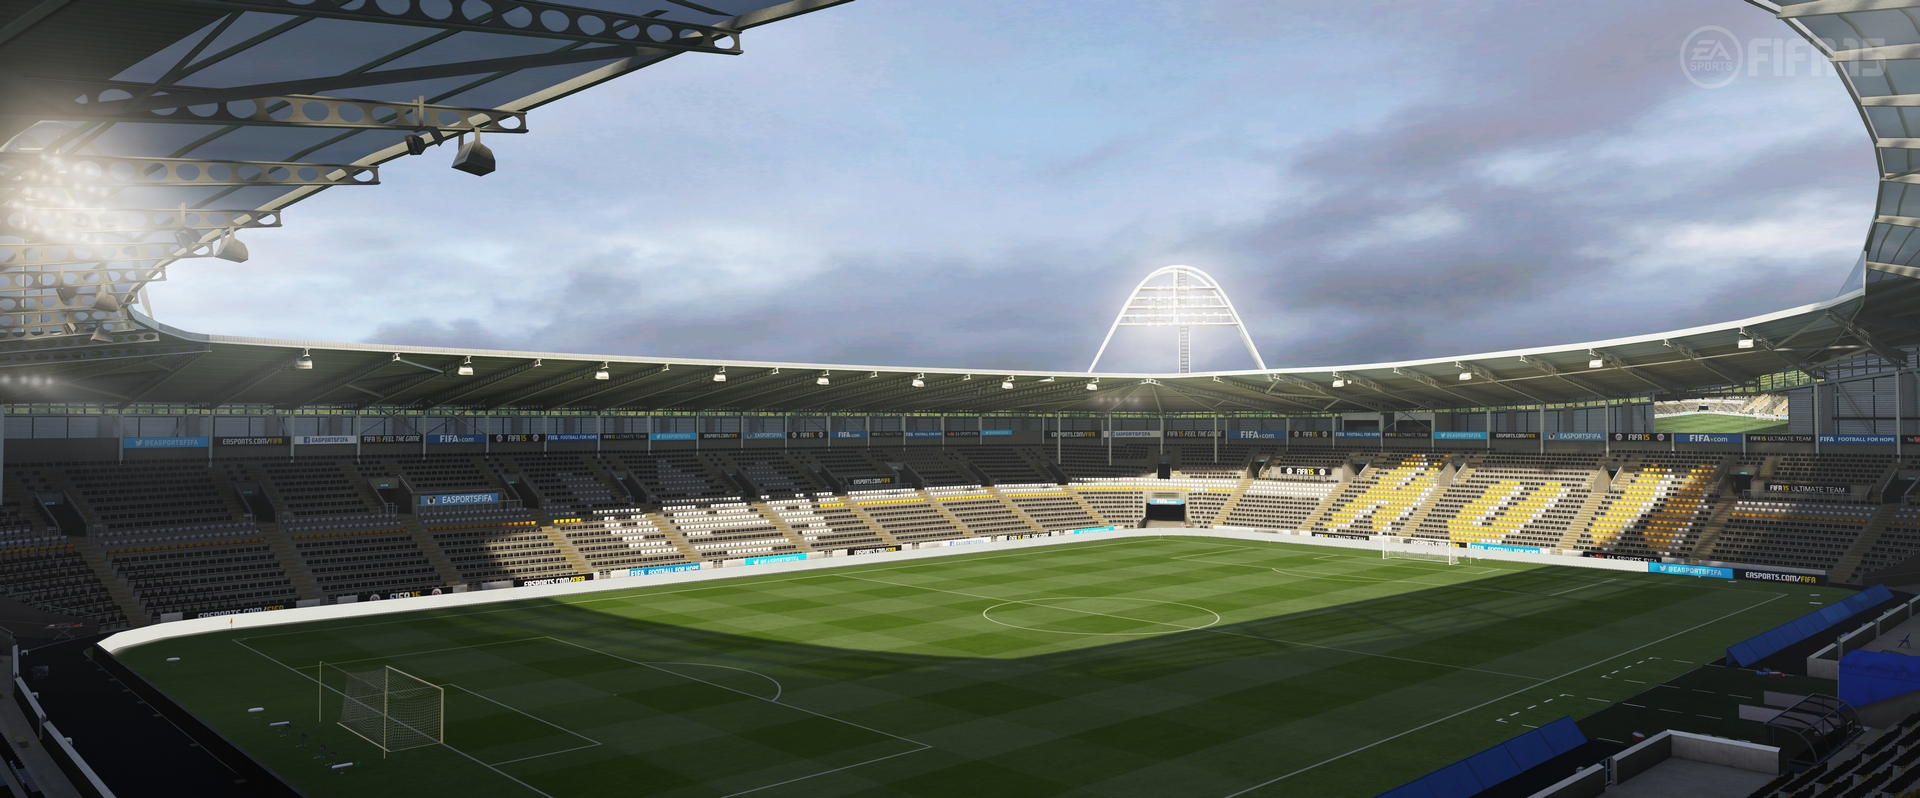 fifa-15-kc-stadium-hull-city